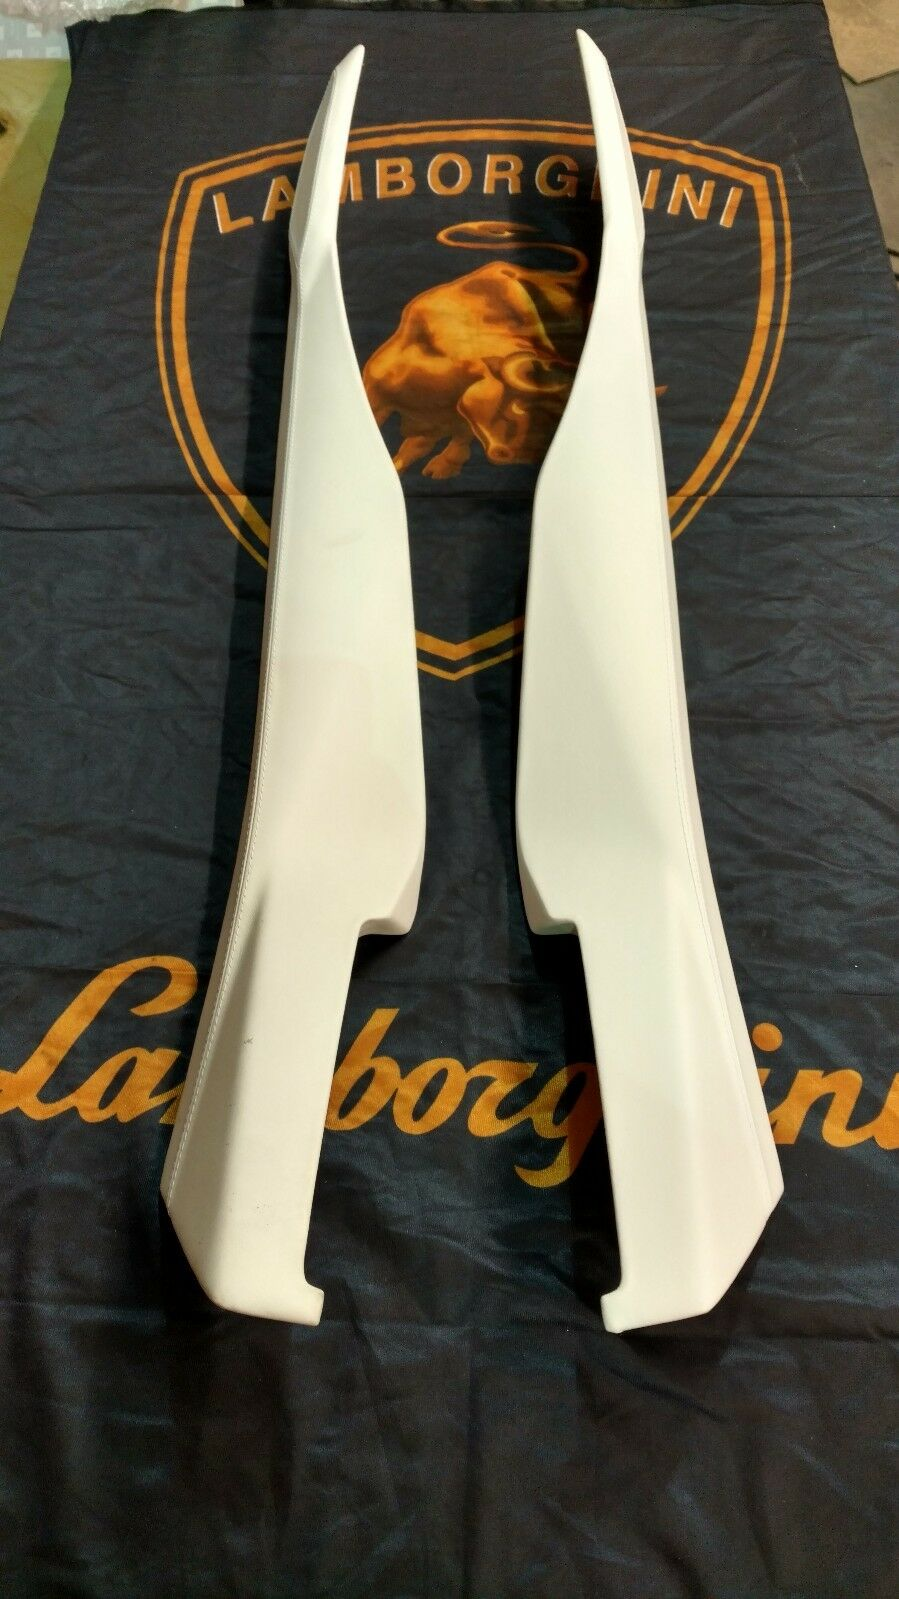 LAMBORGHINI AVENTADOR LP700 720 INTERIOR CENTER CONSOLE TRIM WHITE LEATHER OEM